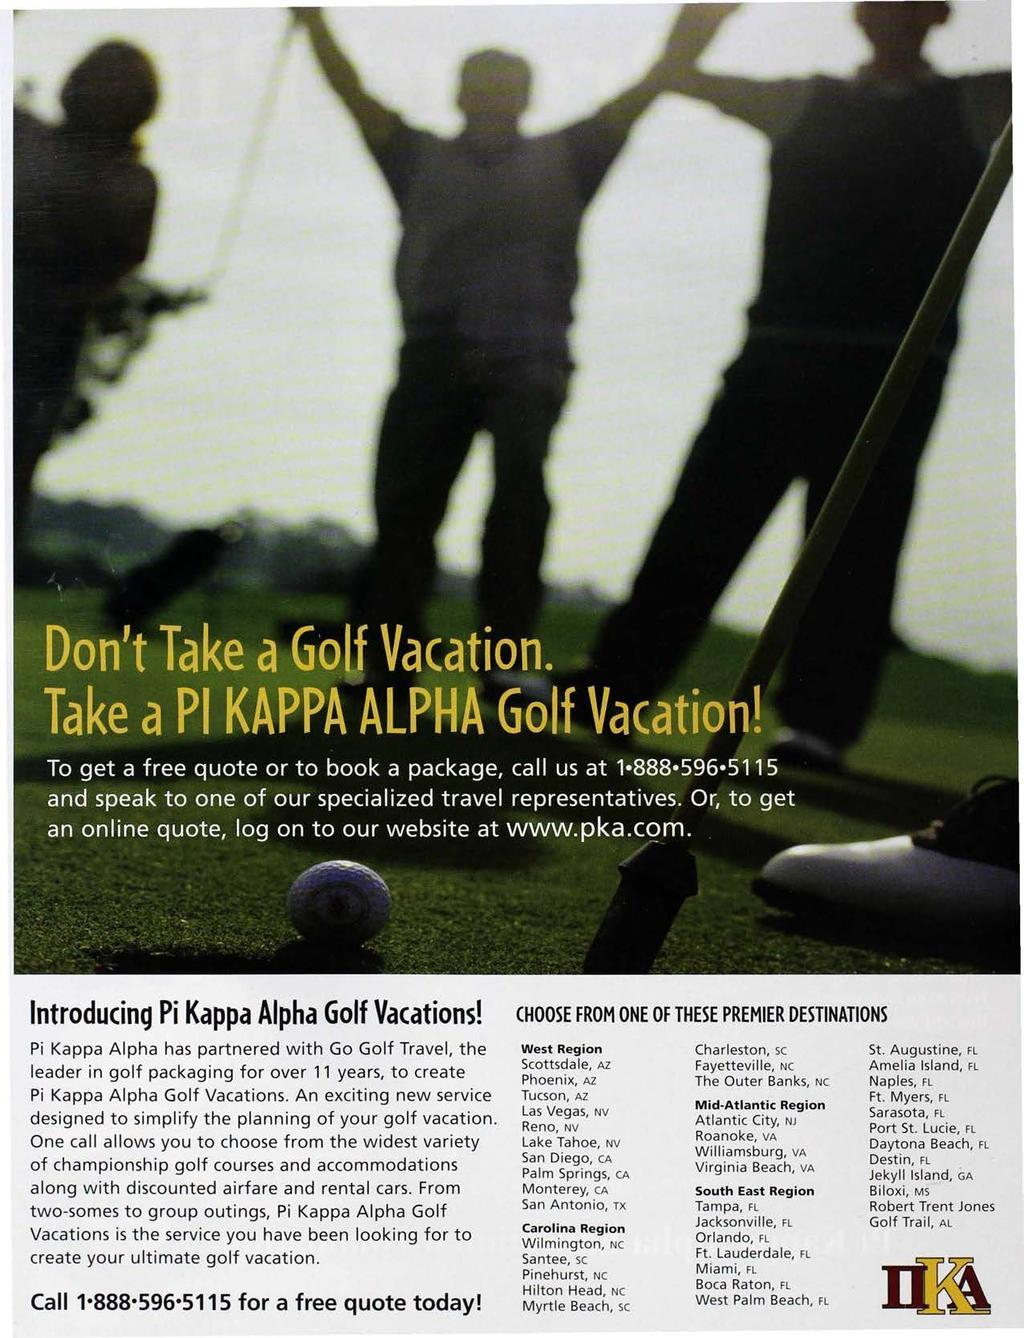 Introducing Pi Kappa Alpha Golf Vacations! Pi Kappa Alpha has partnered with Go Golf Travel, the leader in golf packaging for over 11 years, to create Pi Kappa Alpha Golf Vacations.